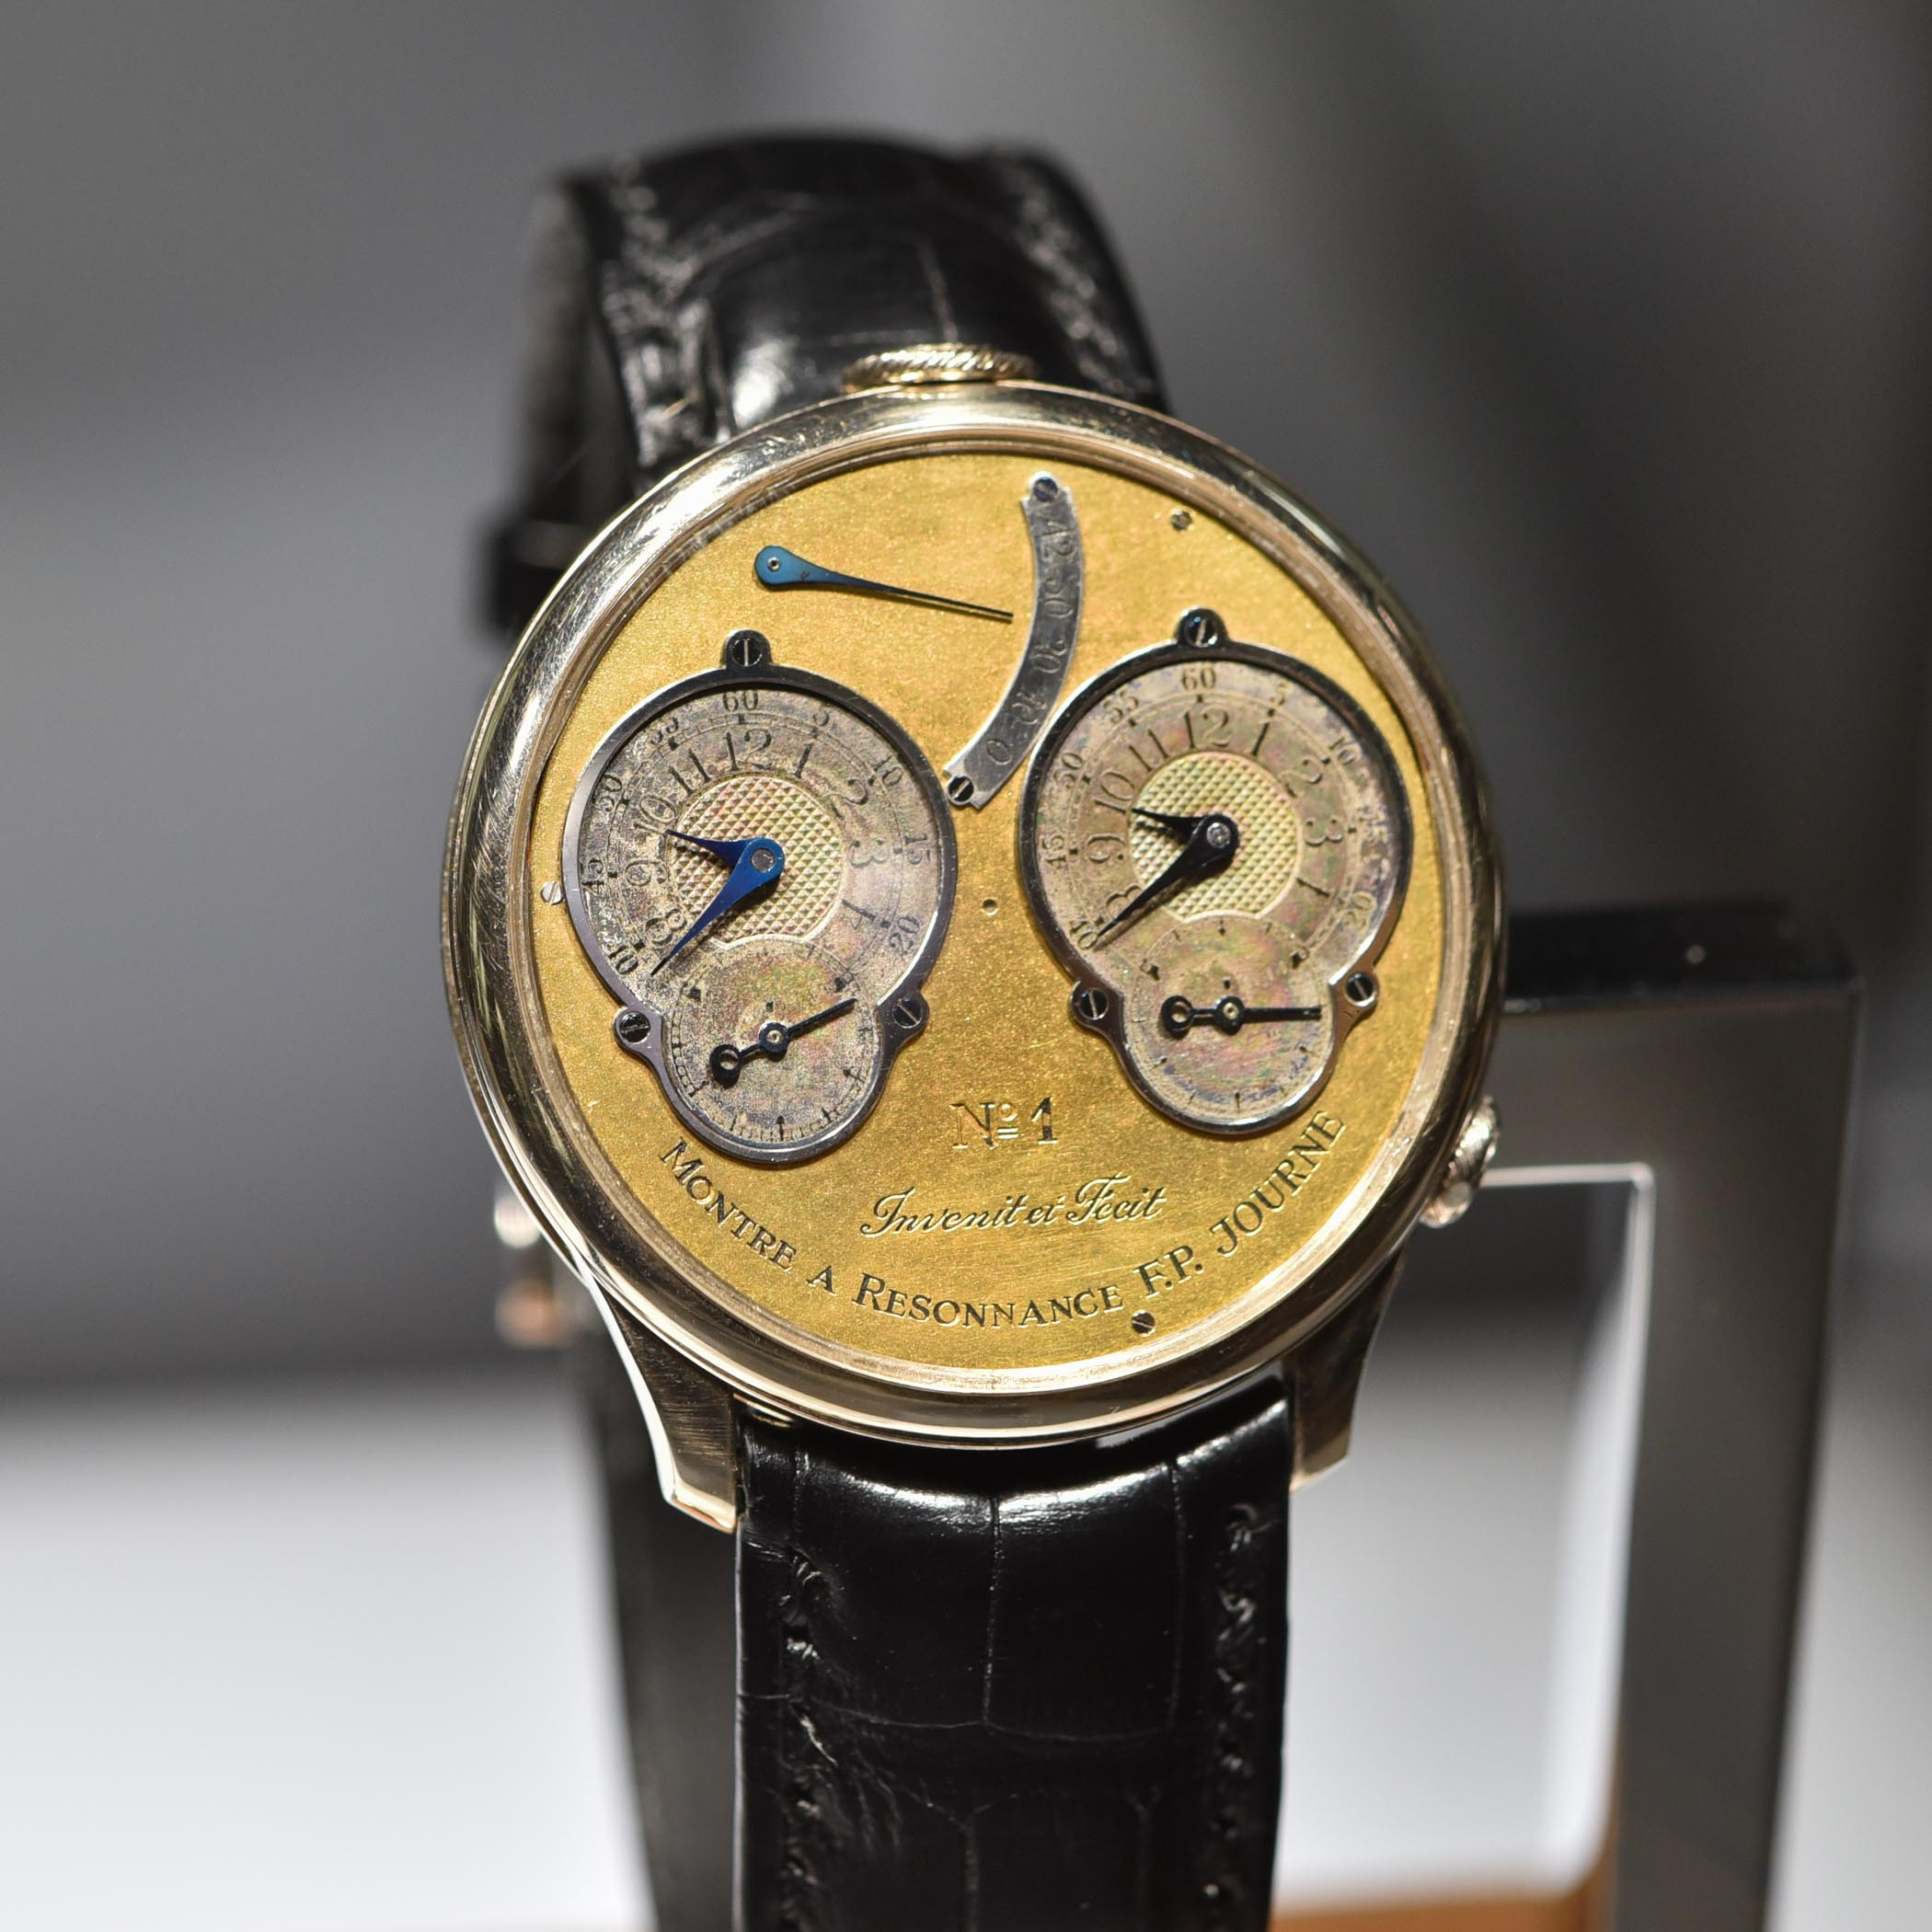 FP-Journe-Chronometre-a-Resonance-prototype-2.jpg